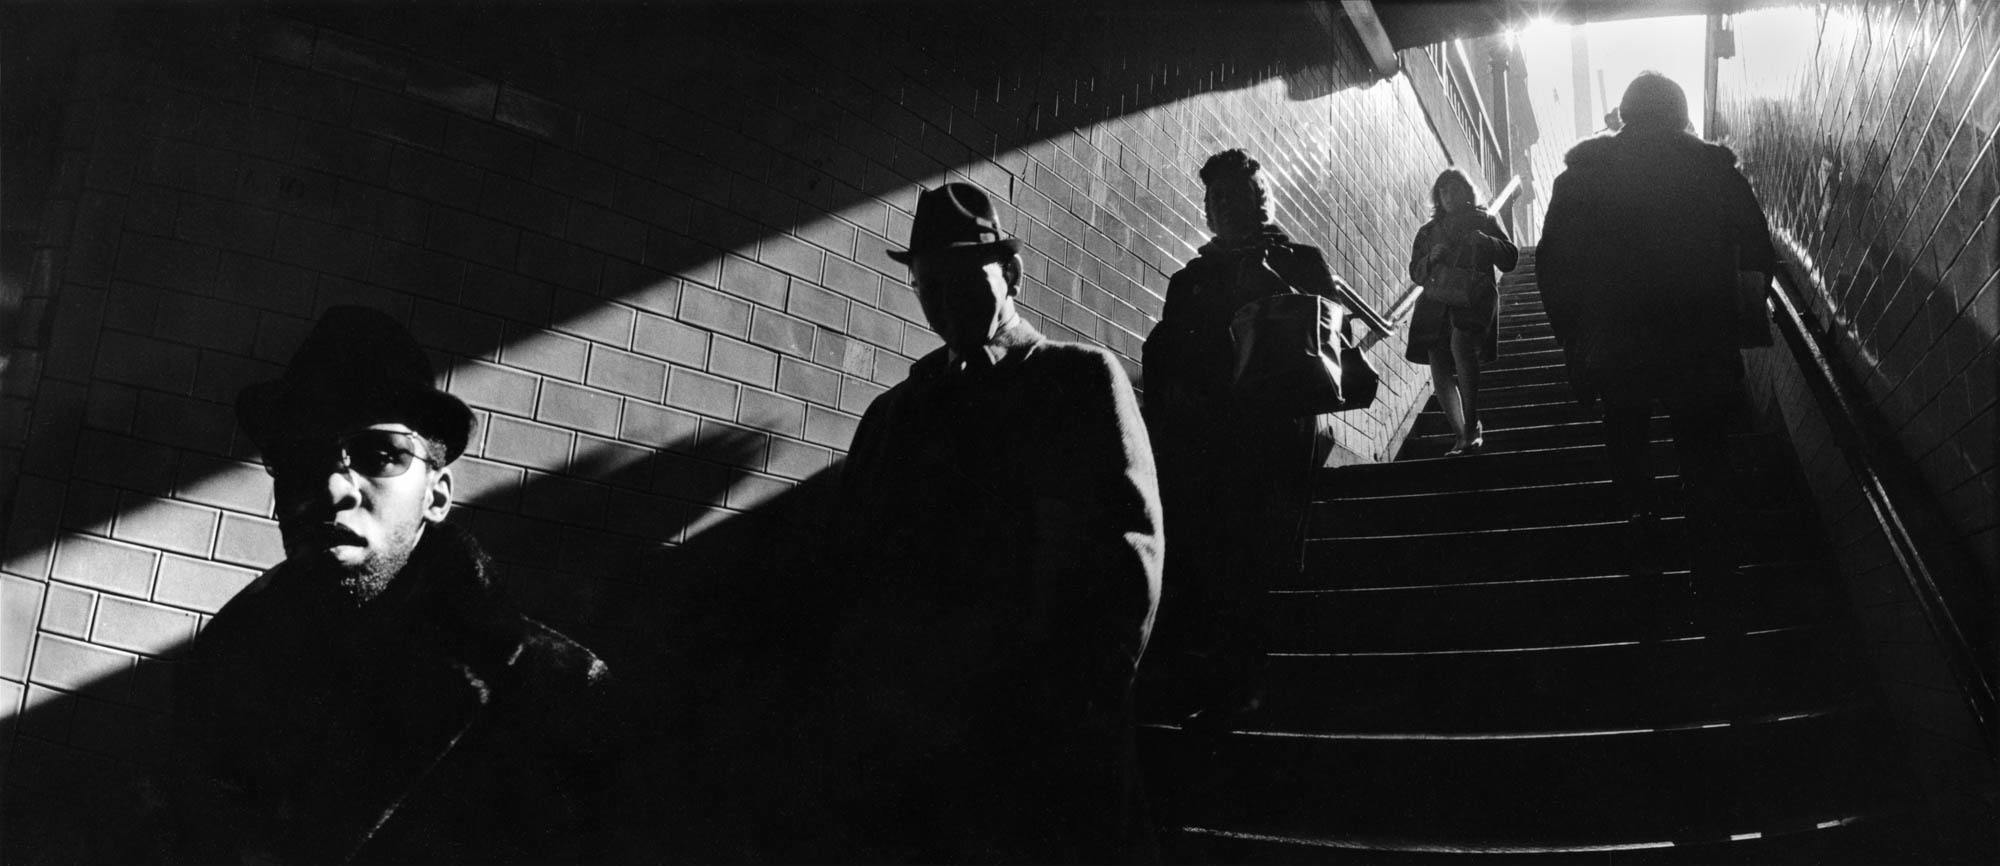 Copy of Ascending Subway Stairs (New York, NY), 1970